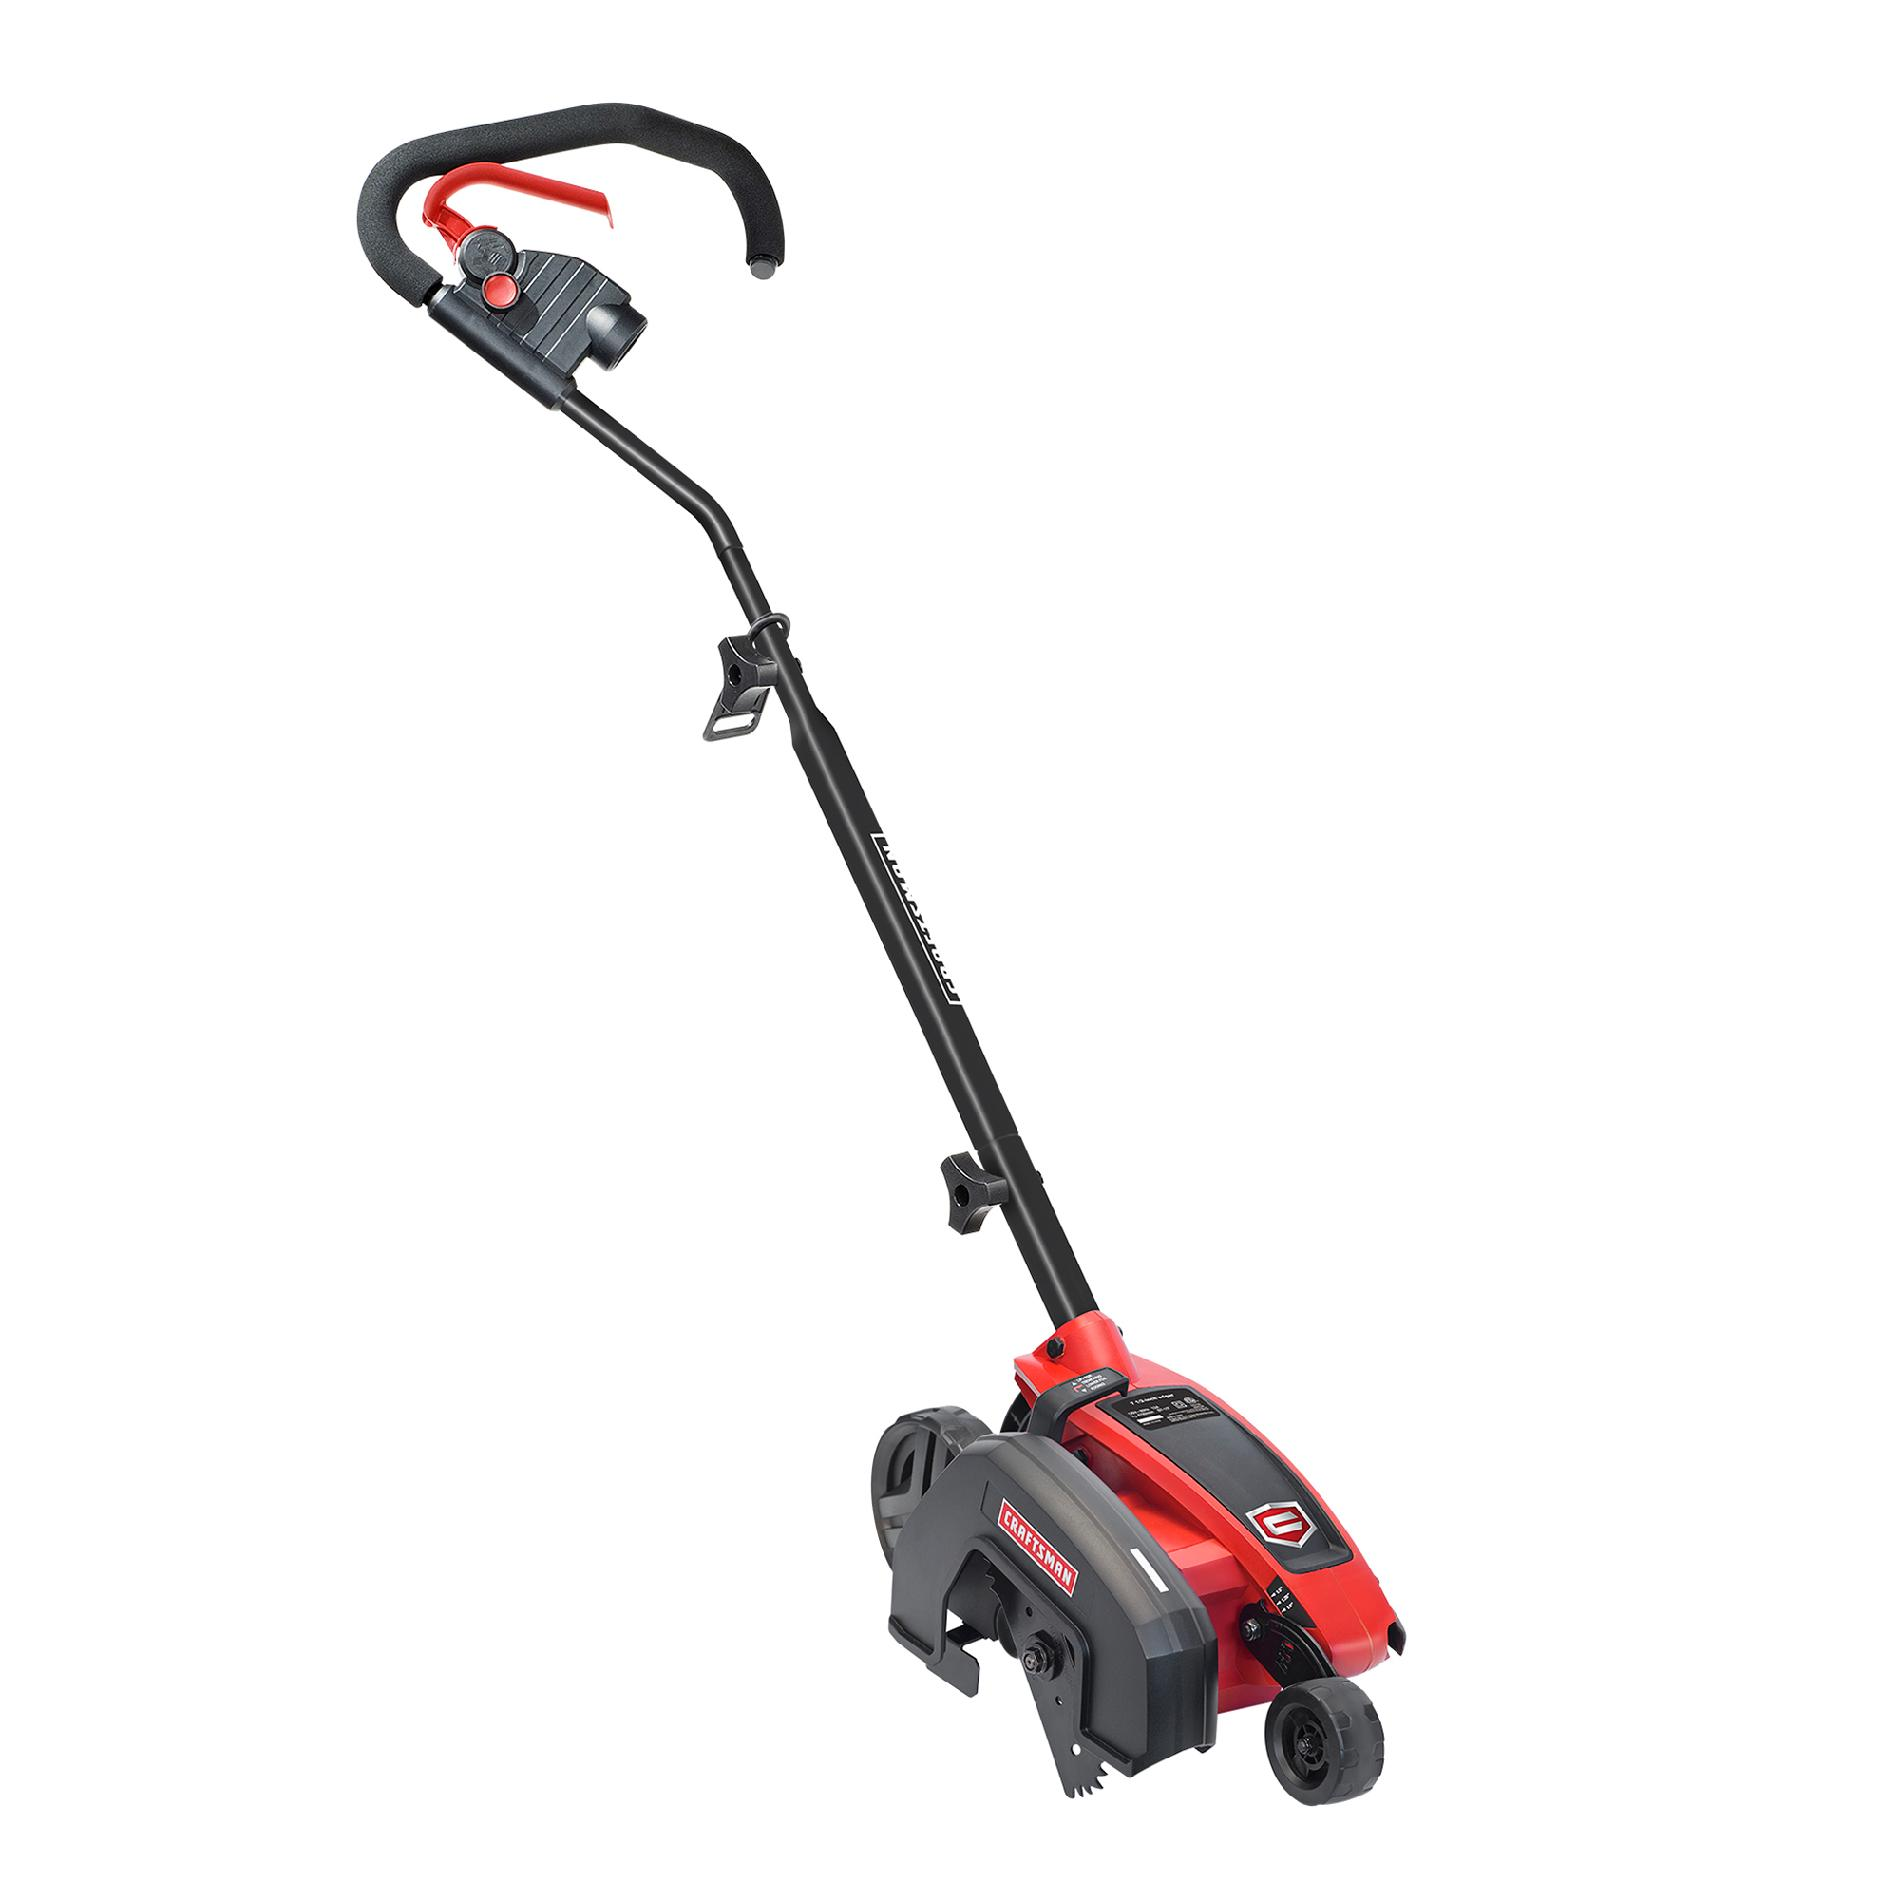 Craftsman Gle150u1 2 In 1 110v Electric Corded Lawn Edger Red Black Lawn Edger Best Riding Lawn Mower Lawn Mower